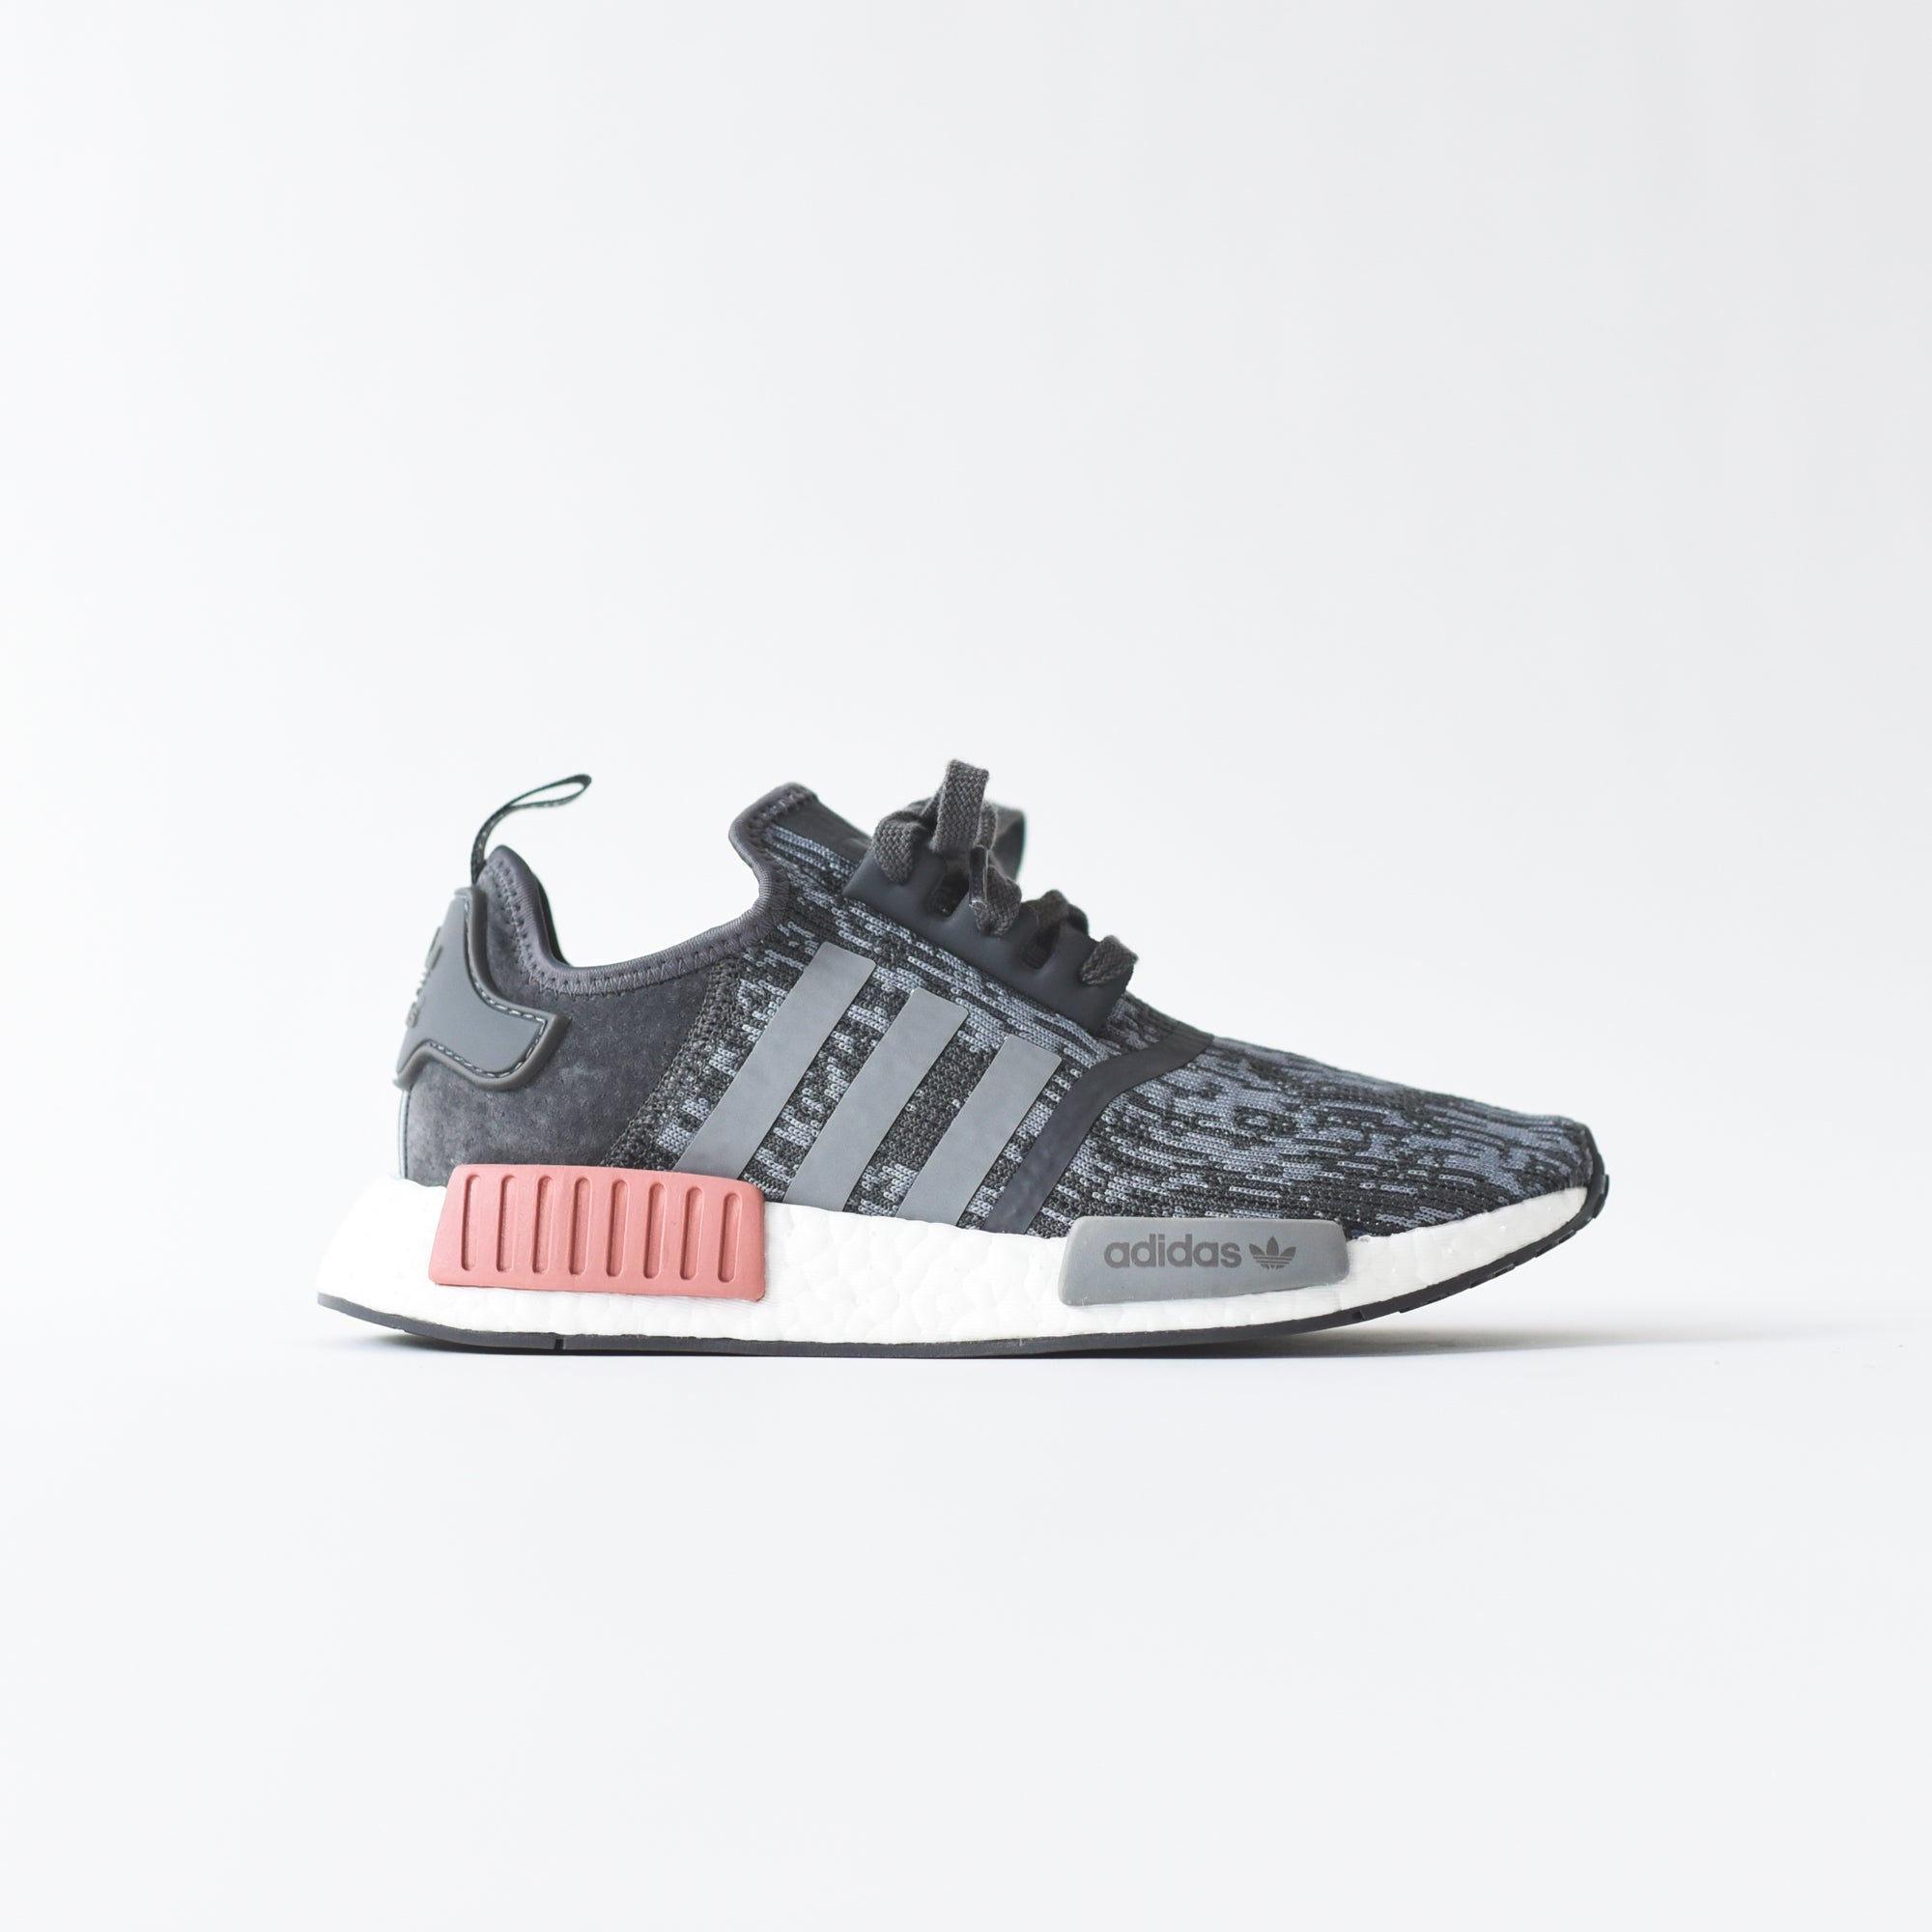 1d93889add68b adidas Originals WMNS NMD R1 - Grey   Pink   White – Kith